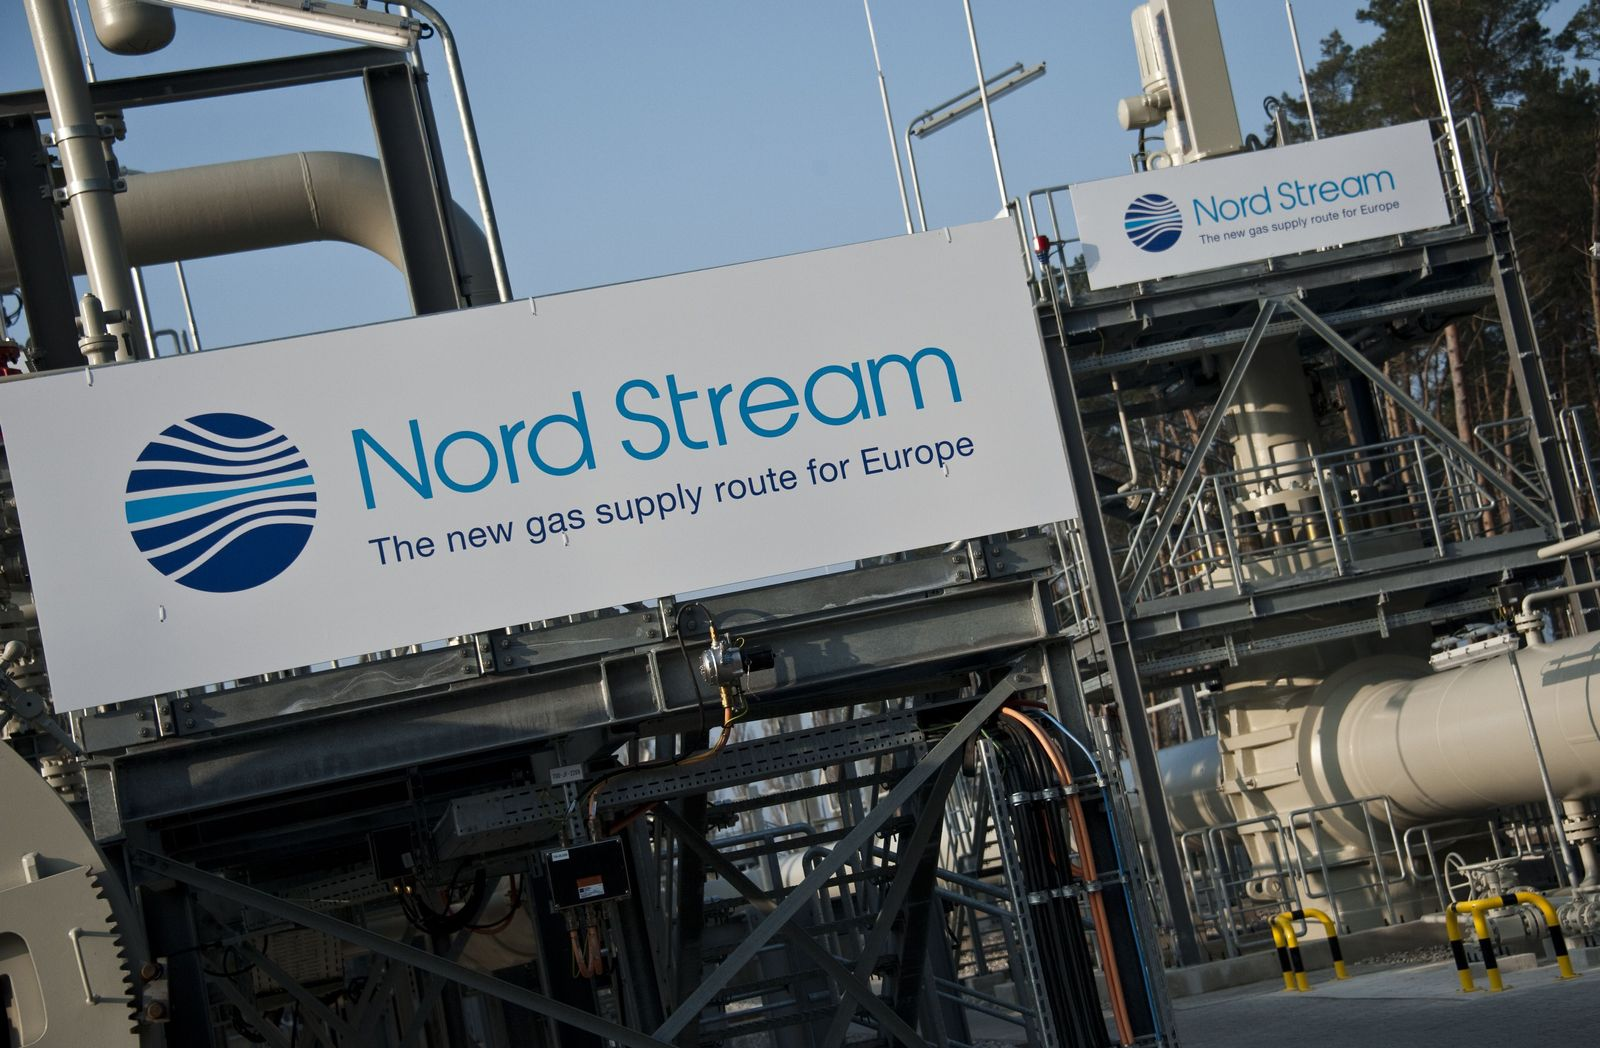 Nord Stream launch machinery sign